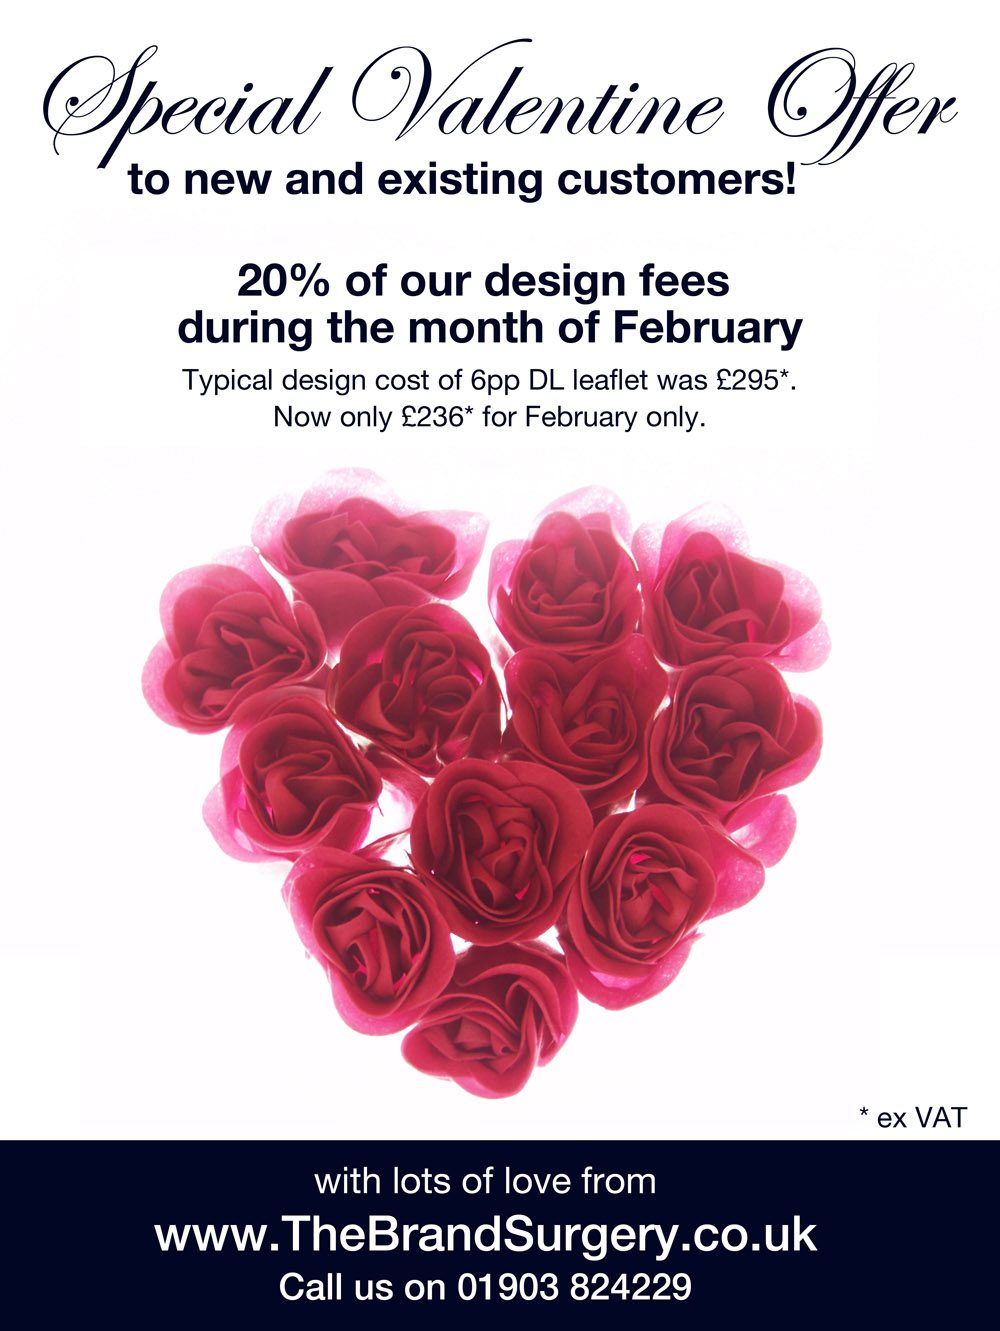 Valentine offer from The Brand Surgery